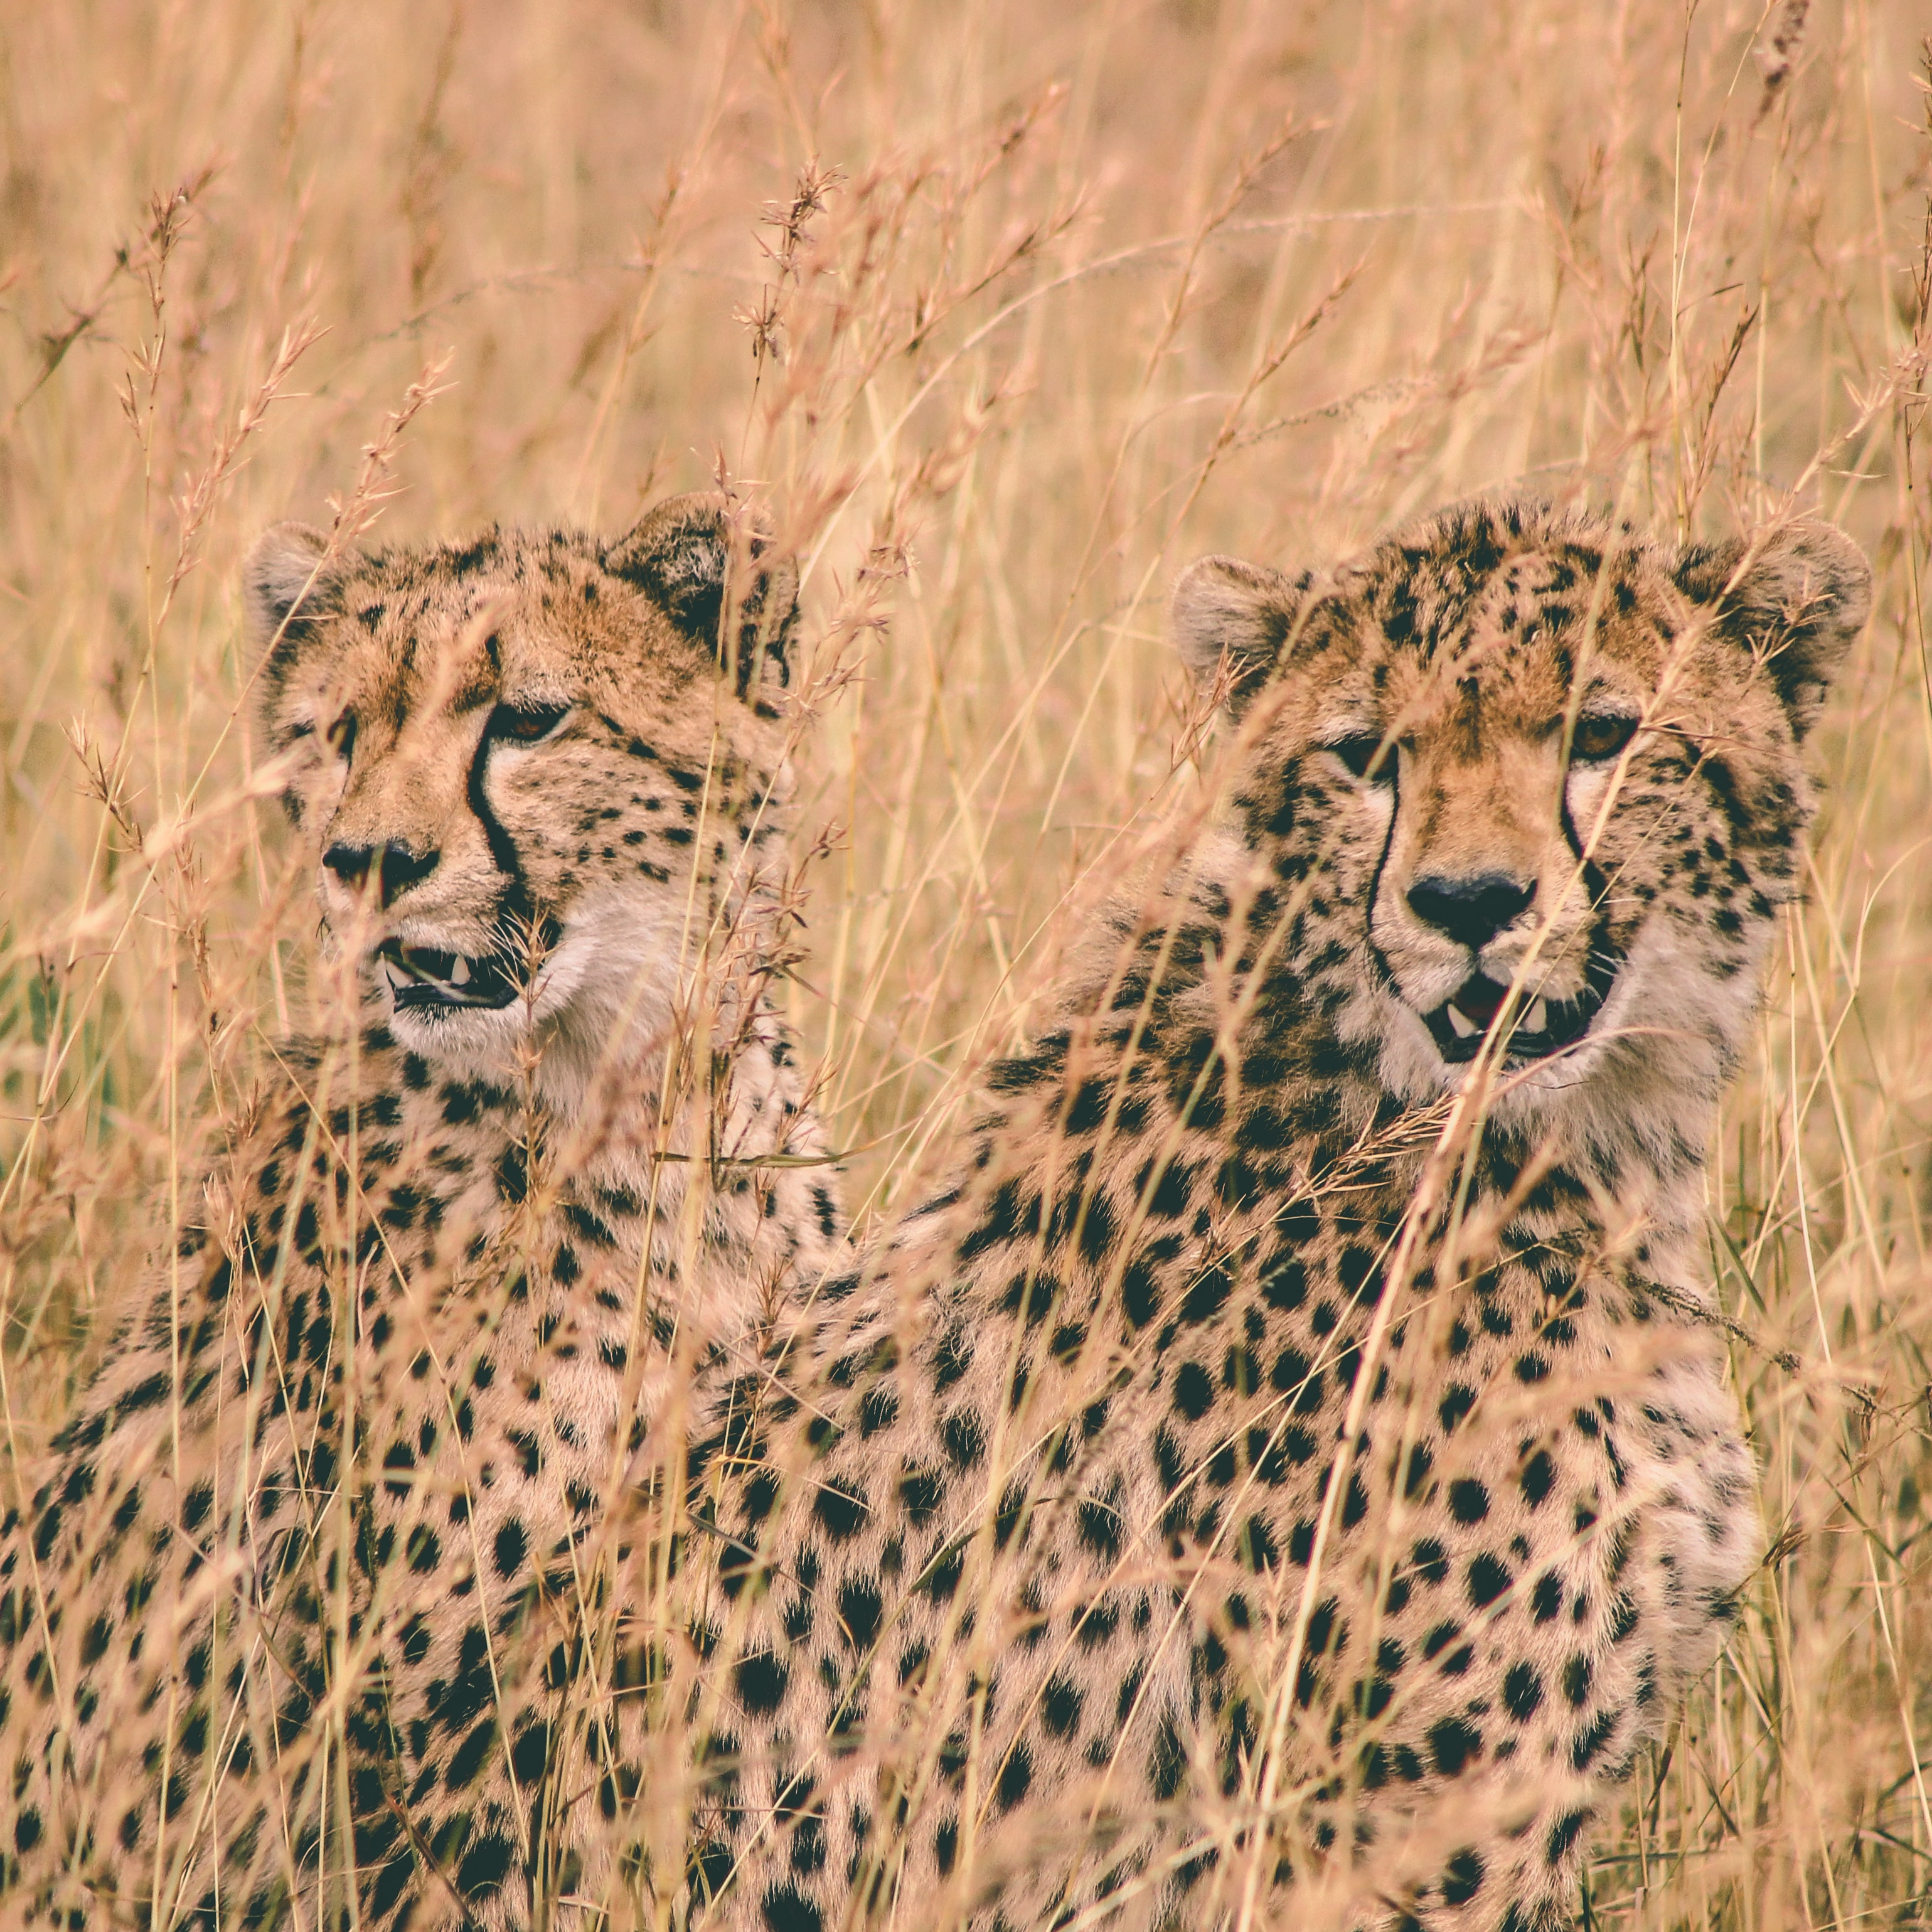 two cheetah sitting on field at daytime